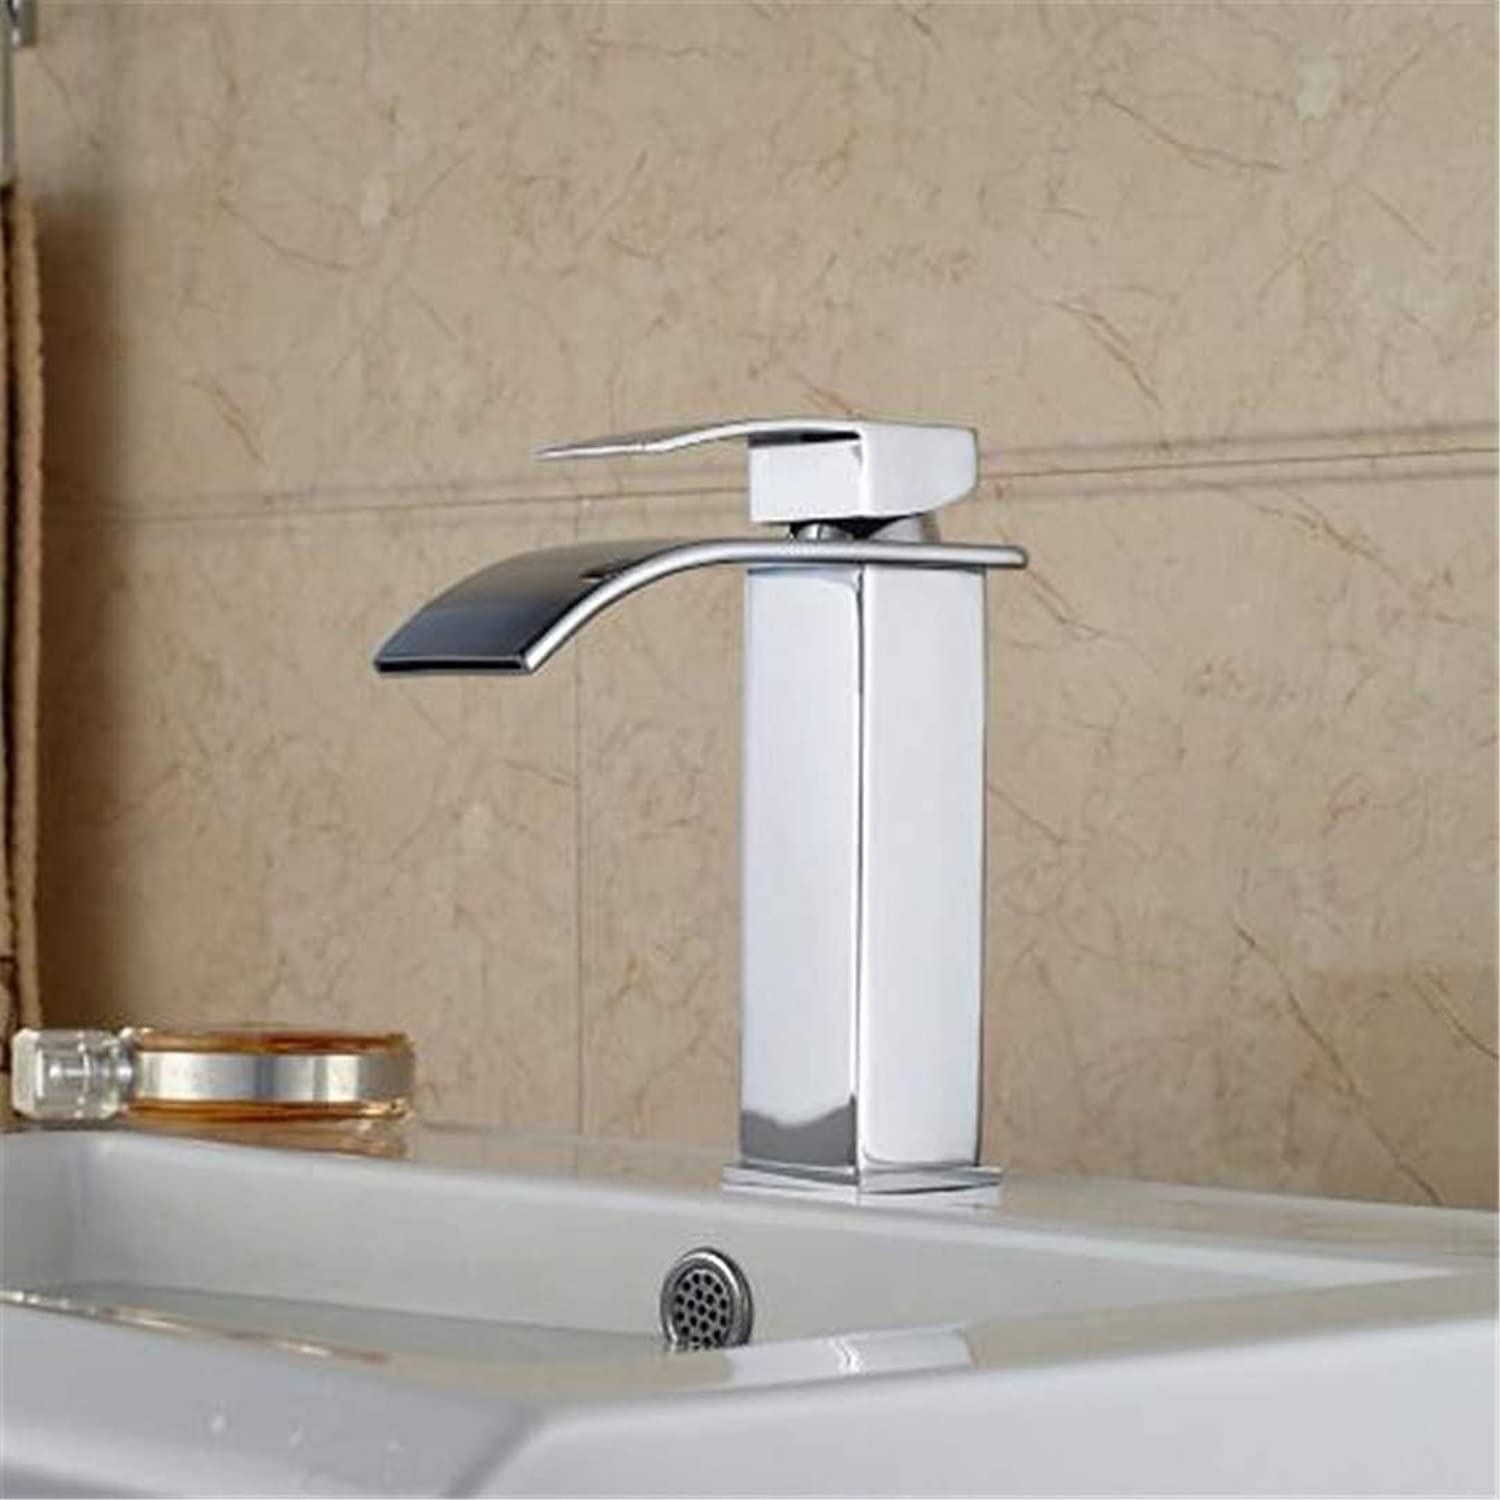 Oudan Taps Kitchen Faucet Bathroom Taps Faucet Waterfall Tappolished Chrome Brass Waterfall Bathroom Basin Faucet Square Vanity Sink Mixer Tap (color   -, Size   -)